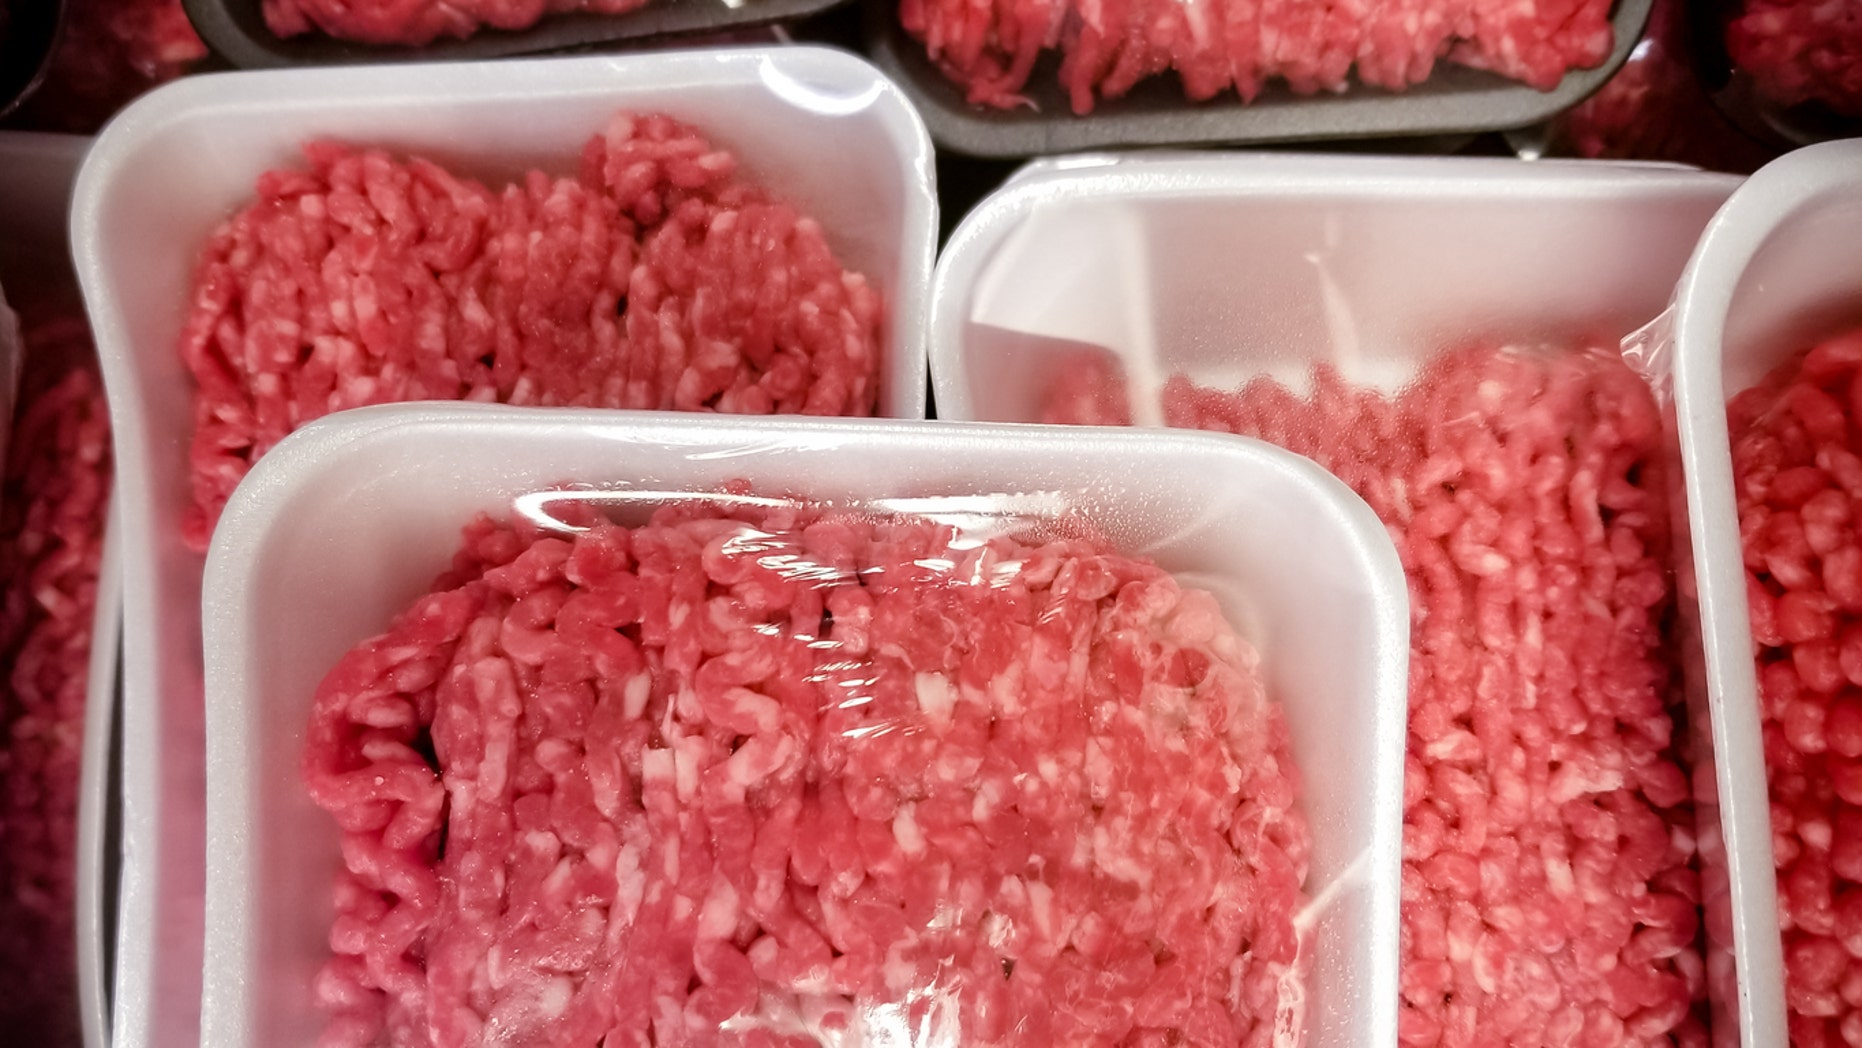 CDC says ground beef appears to be cause of E. coli outbreak